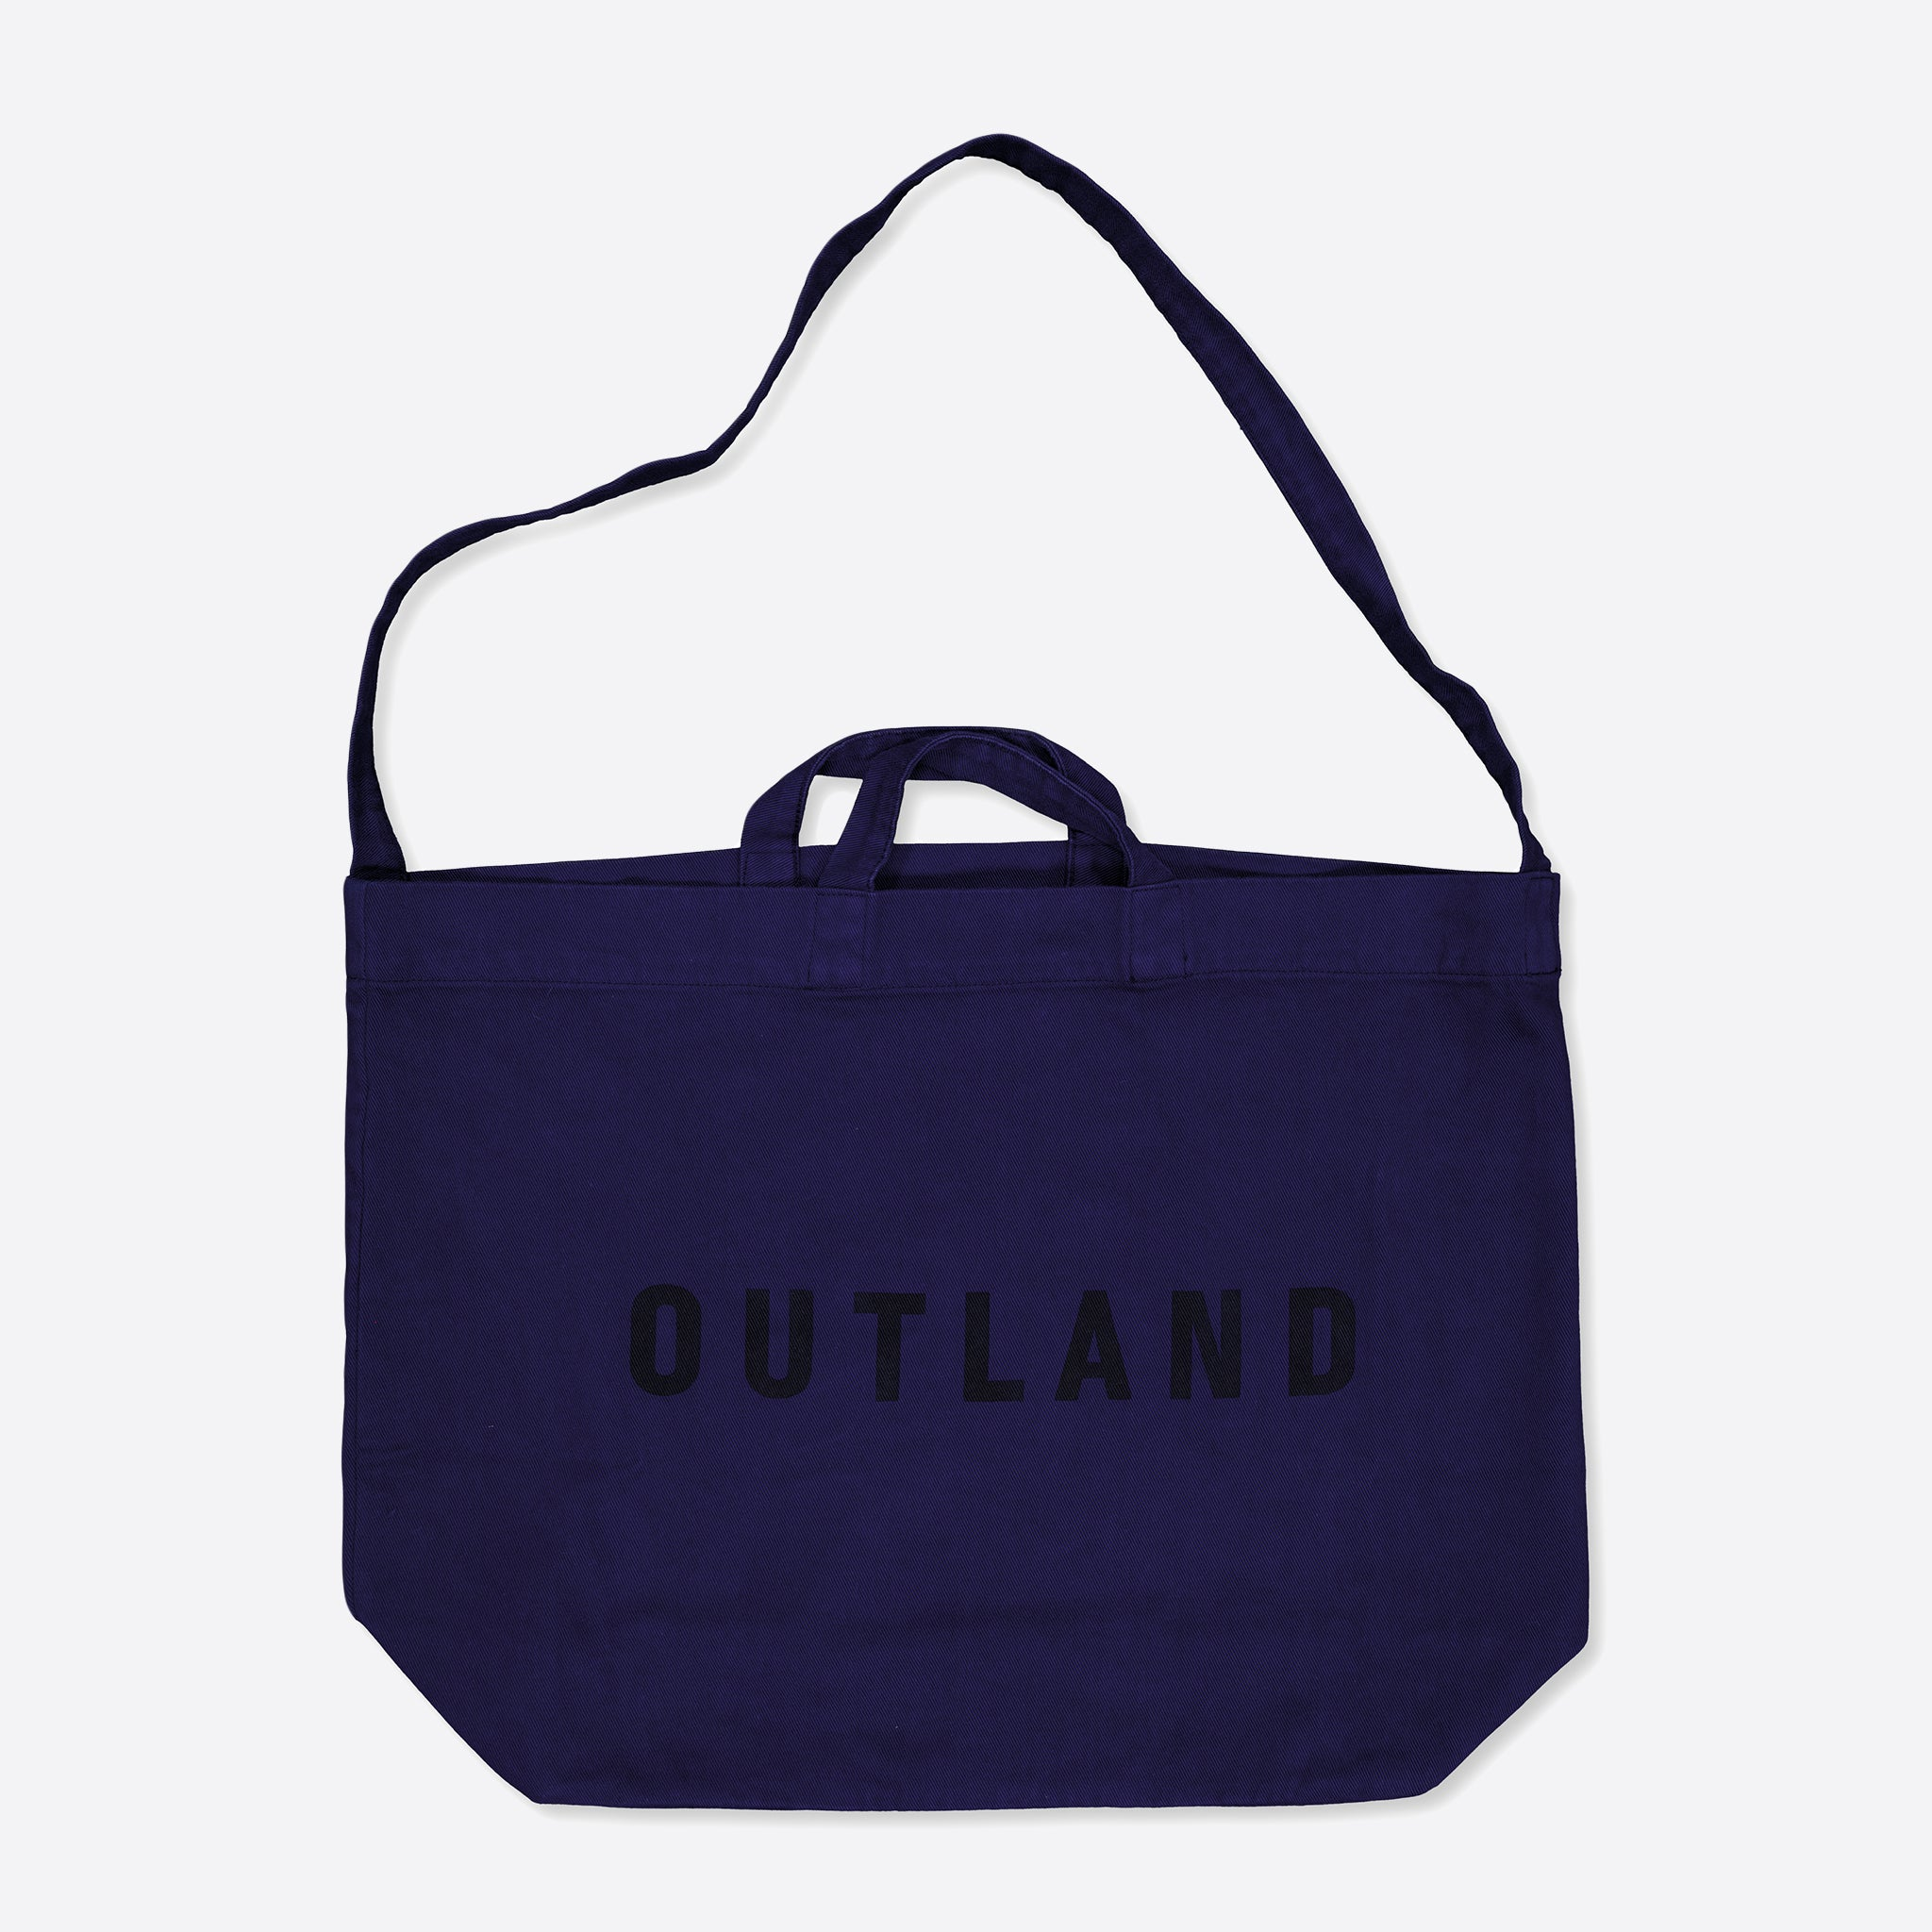 OUTLAND Think Big Bag in Indigo